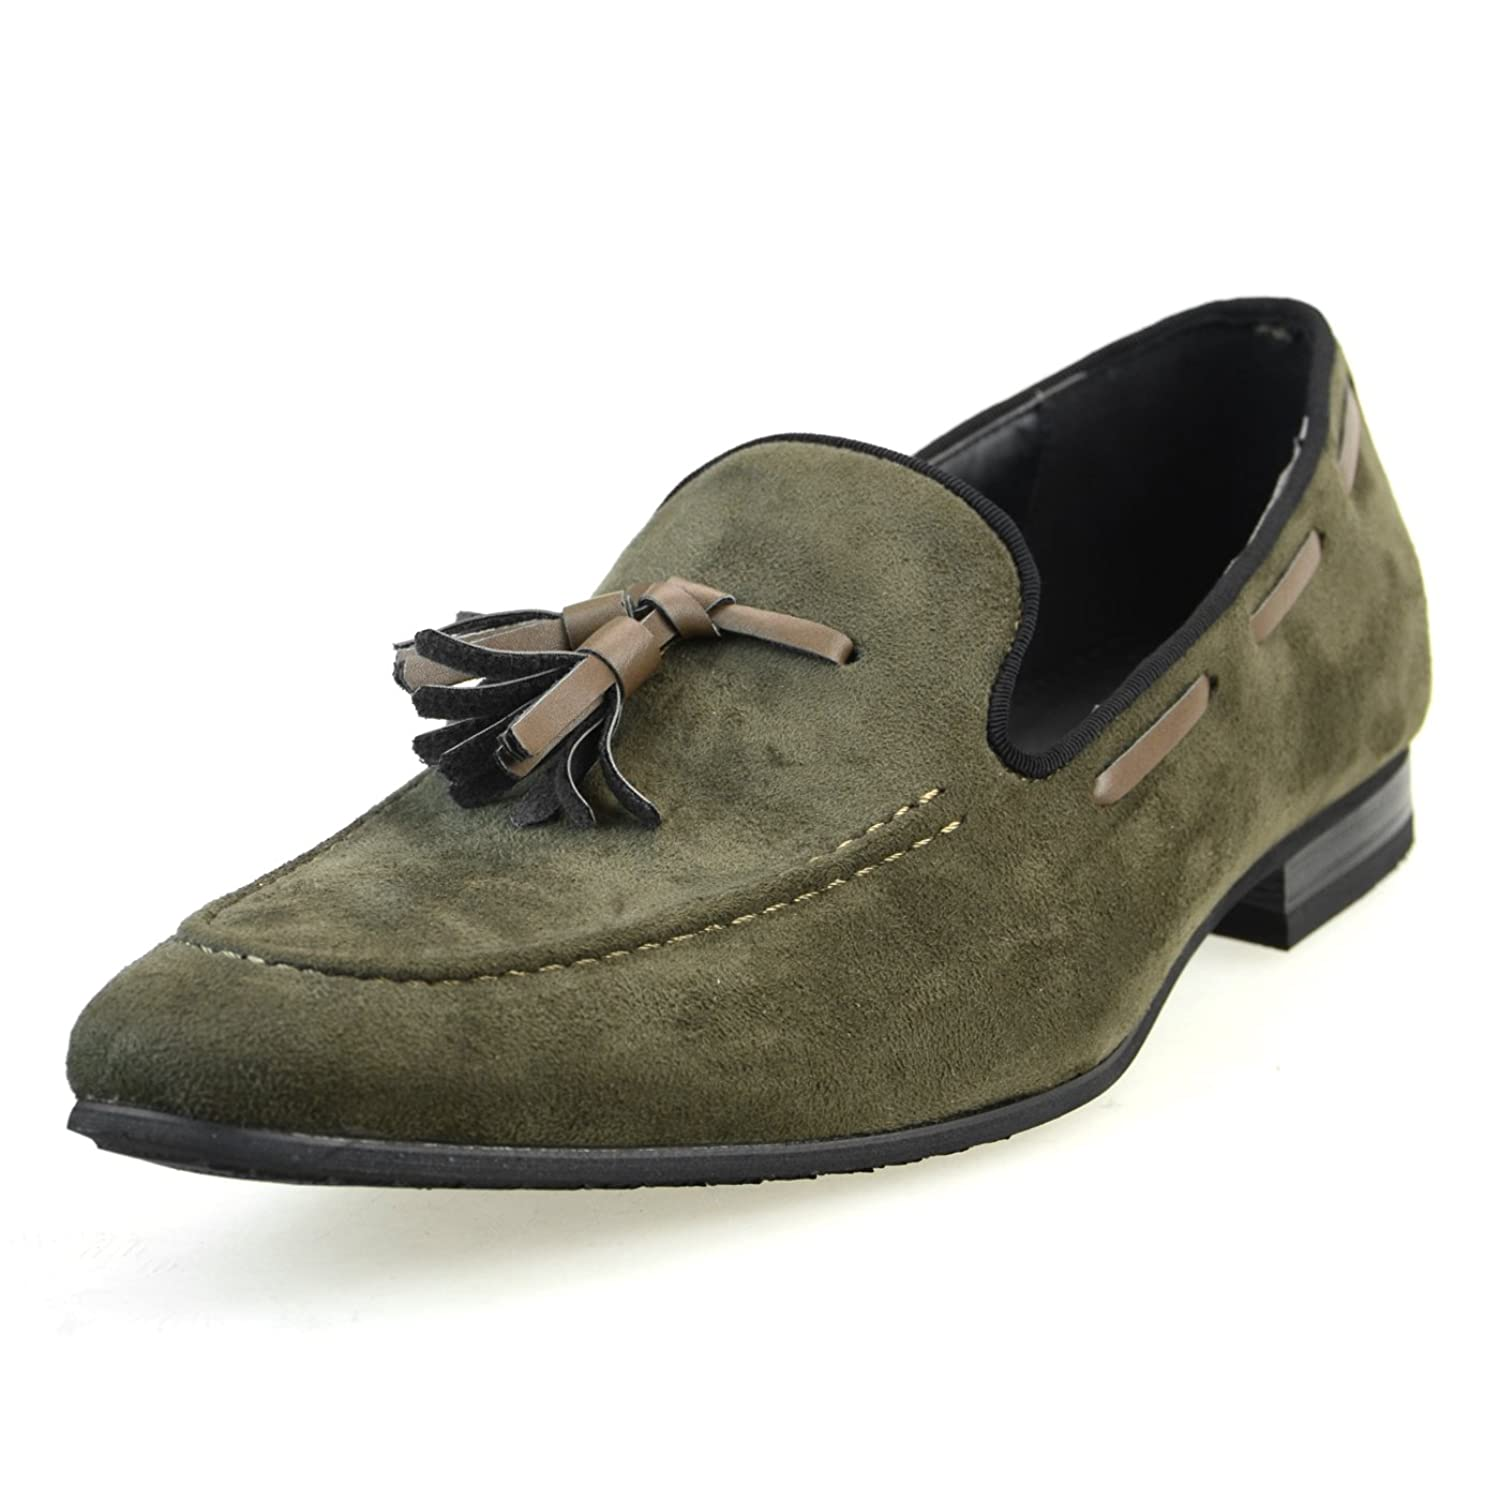 AN by LUCIUS Mens dress shoes Tassel loafers suede Casual Oxford Black Navy wine beige khaki